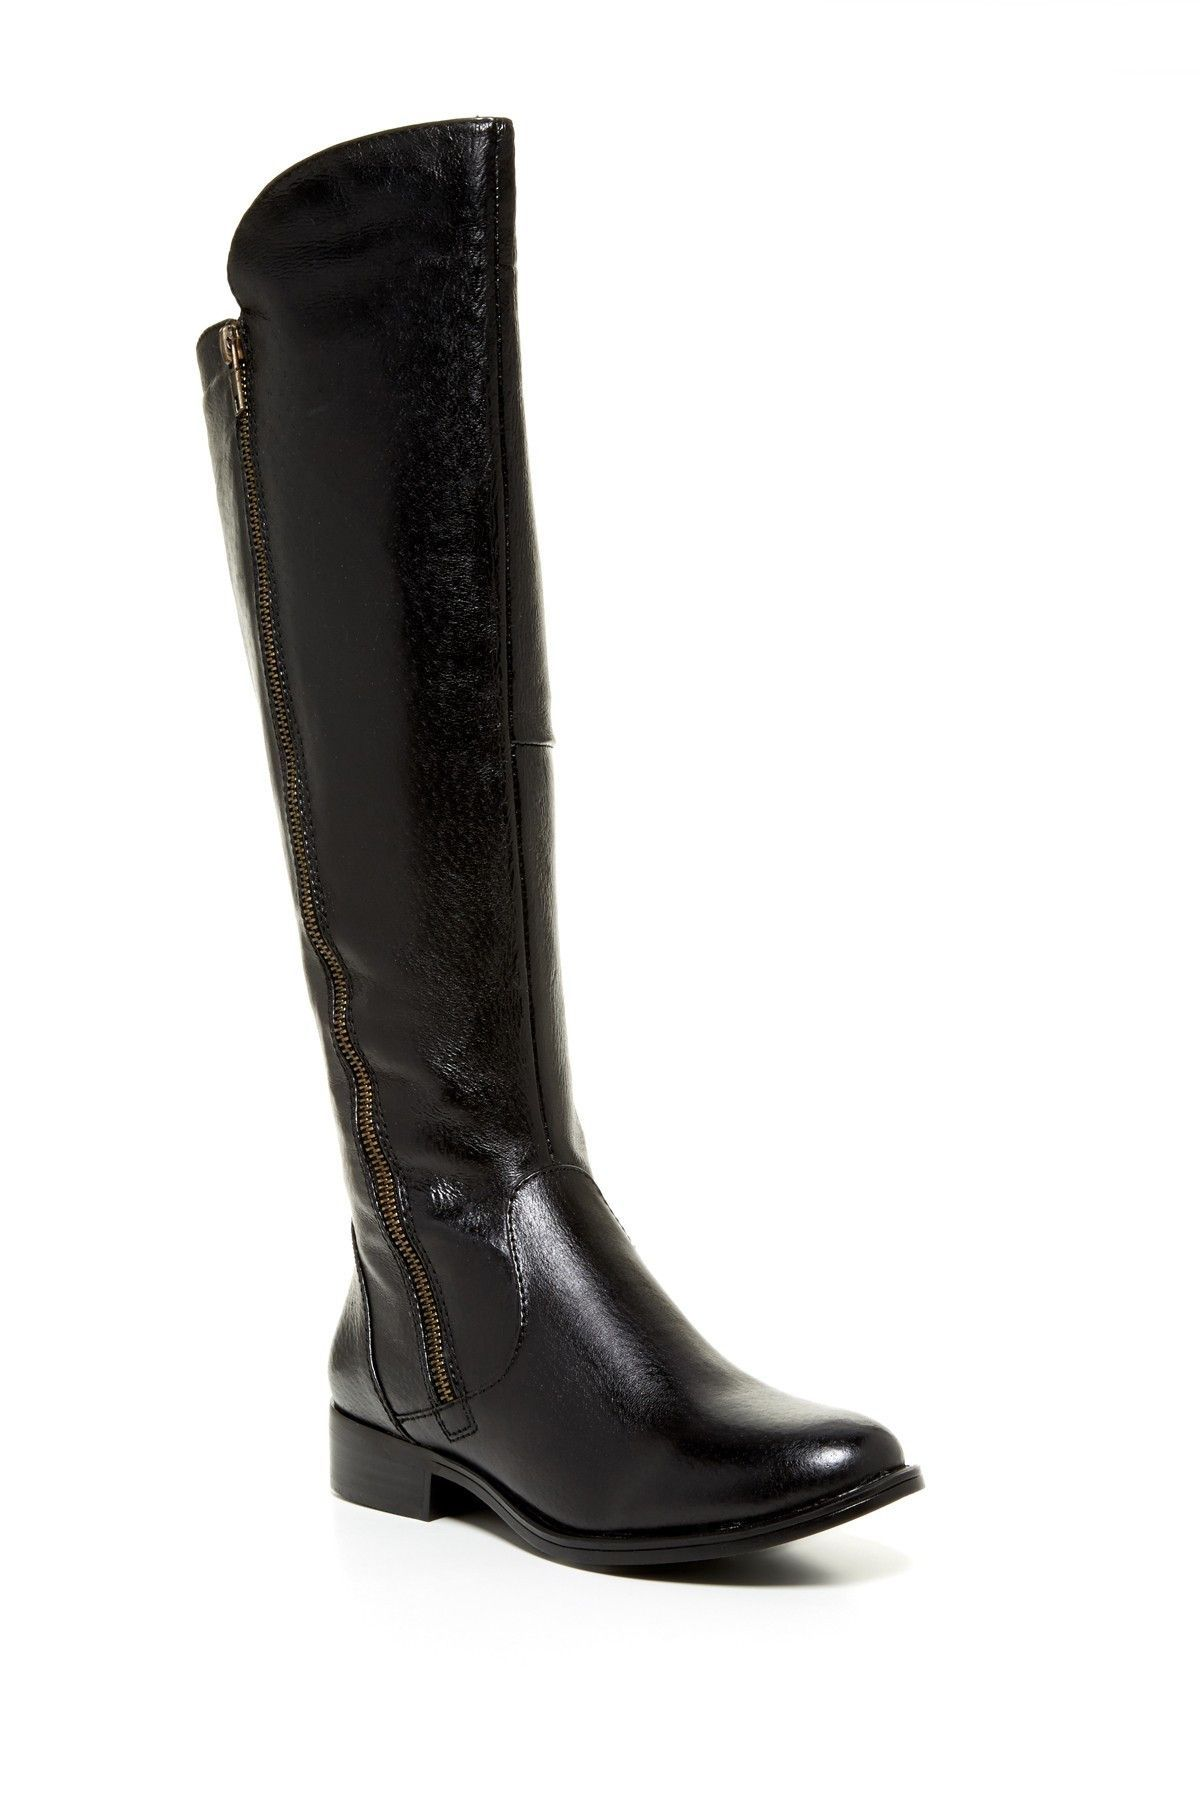 a5ce31dc9ae Steve Madden Black Leather Shandi Tall Riding Boots Size 6 in 2019 ...